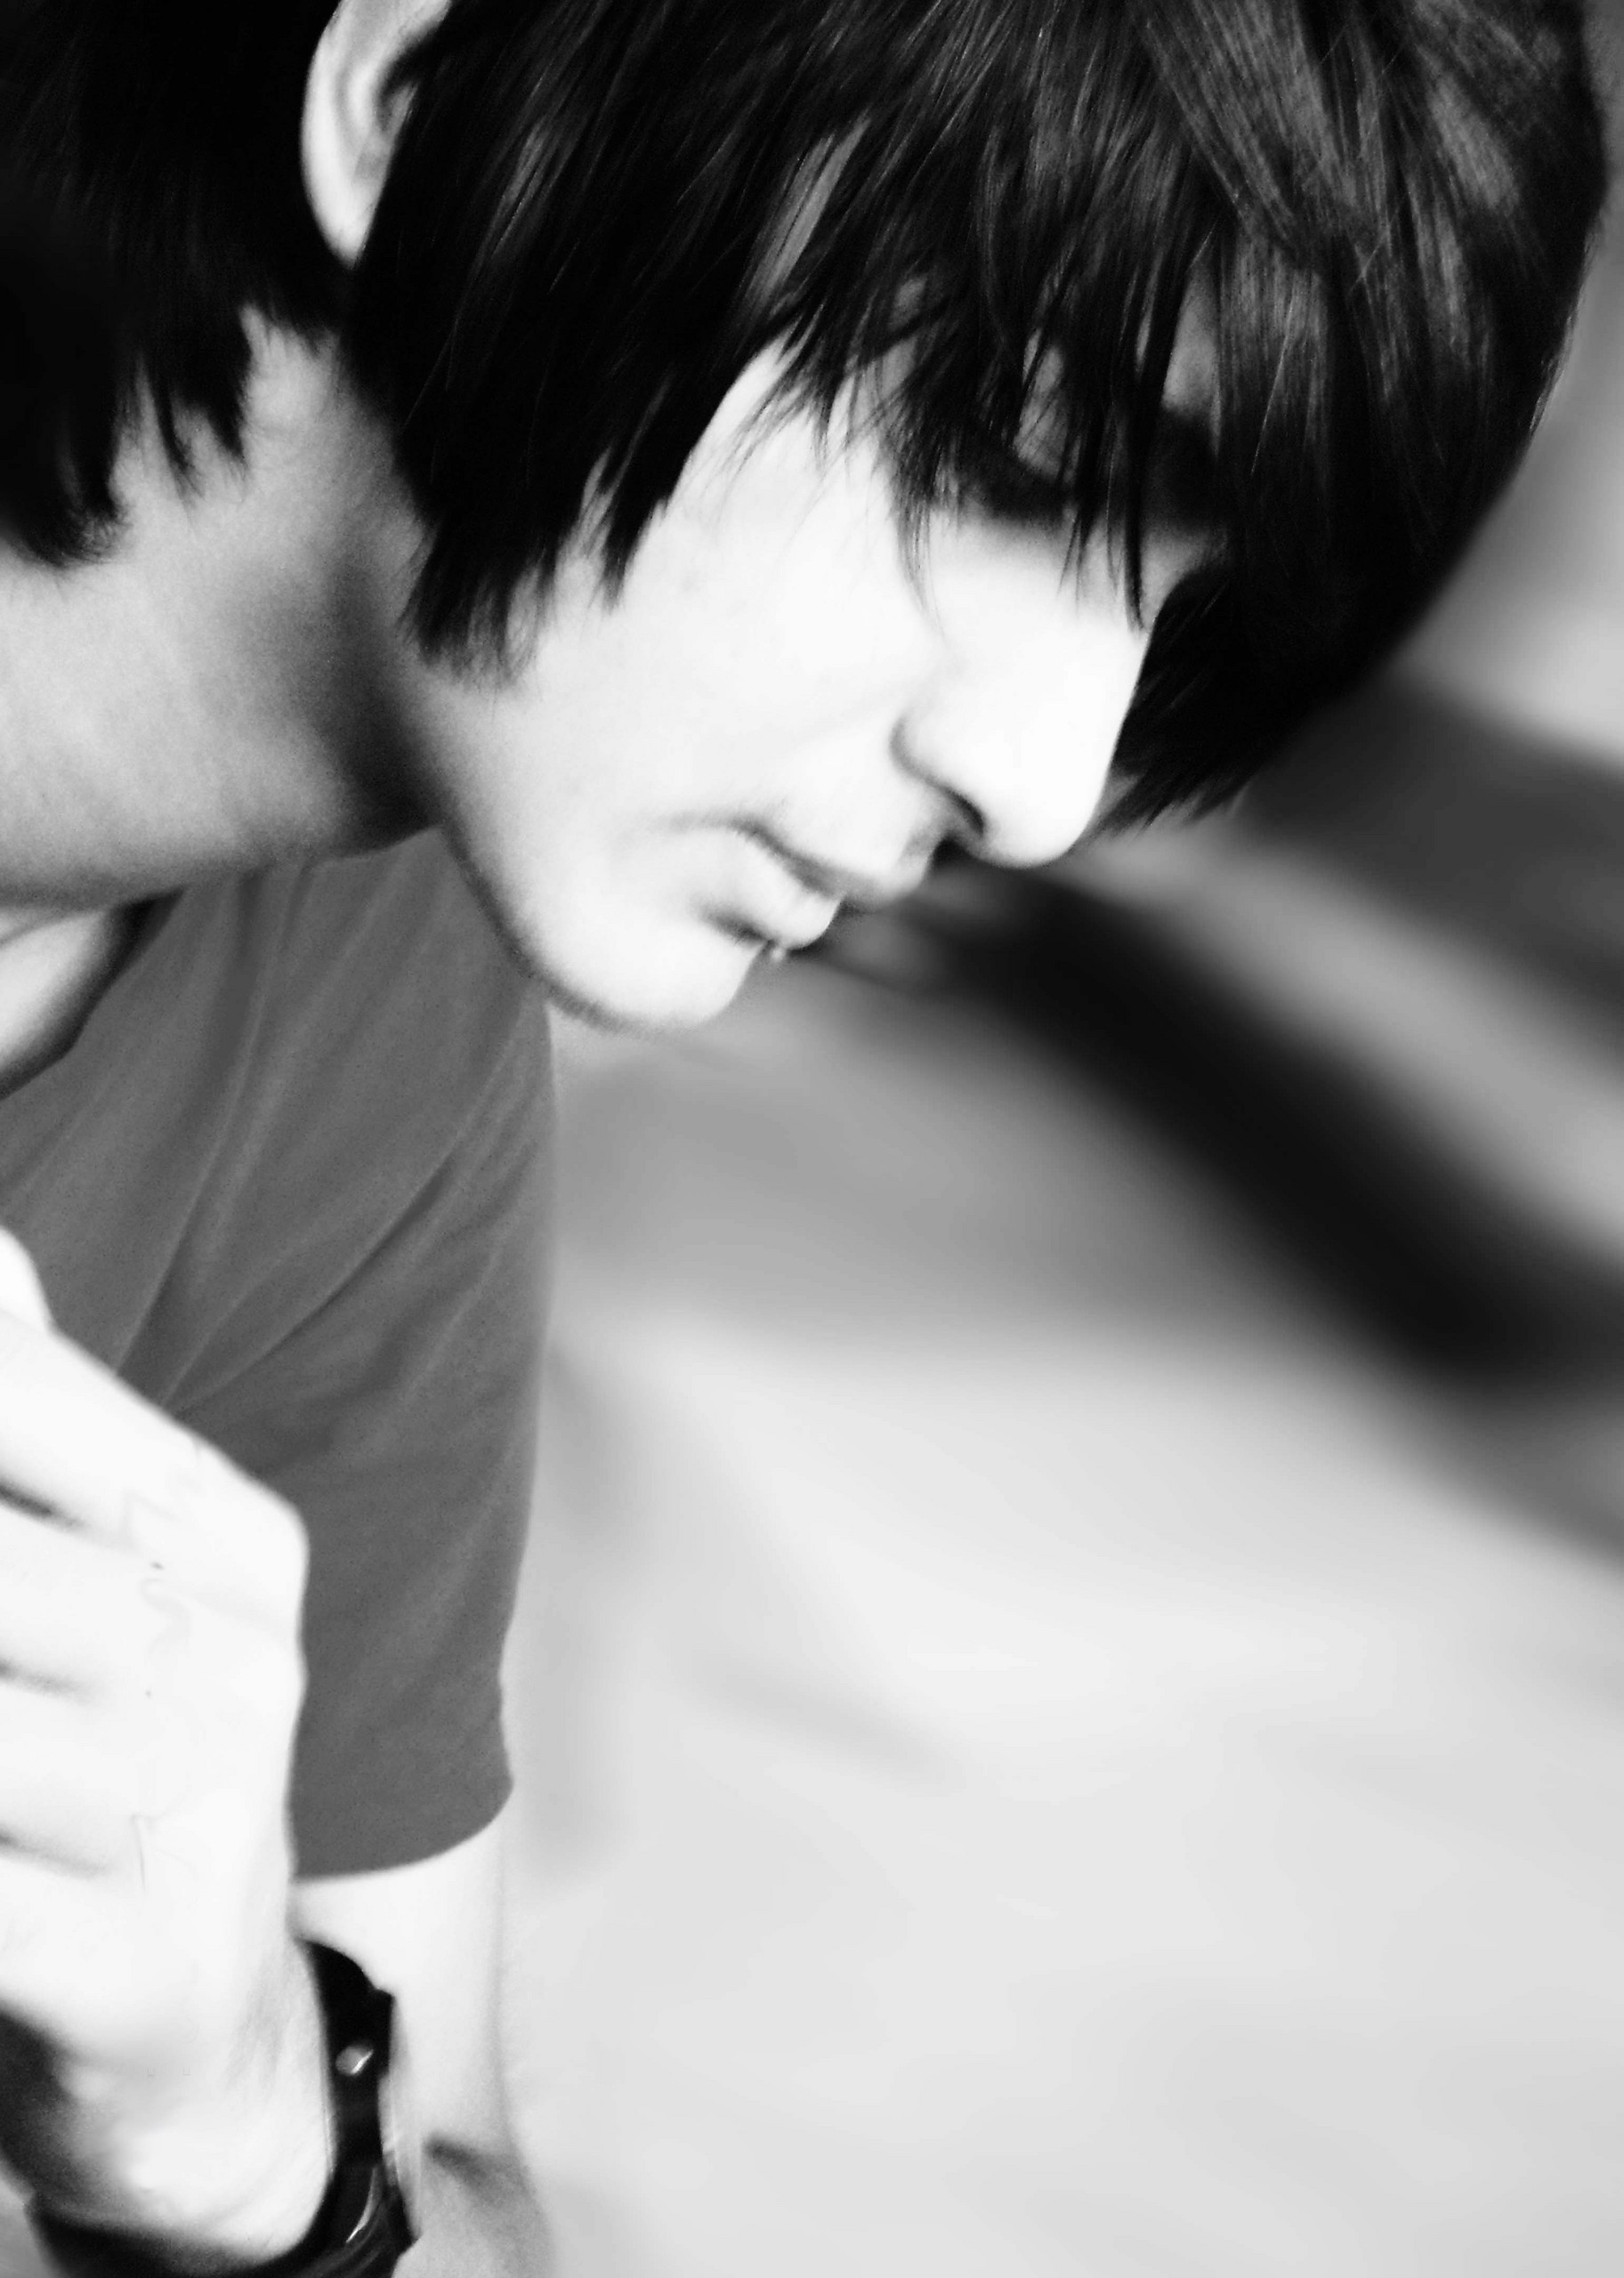 Sad Boy - Photography by Devian art - Emo Boys Photo (30741811 ...